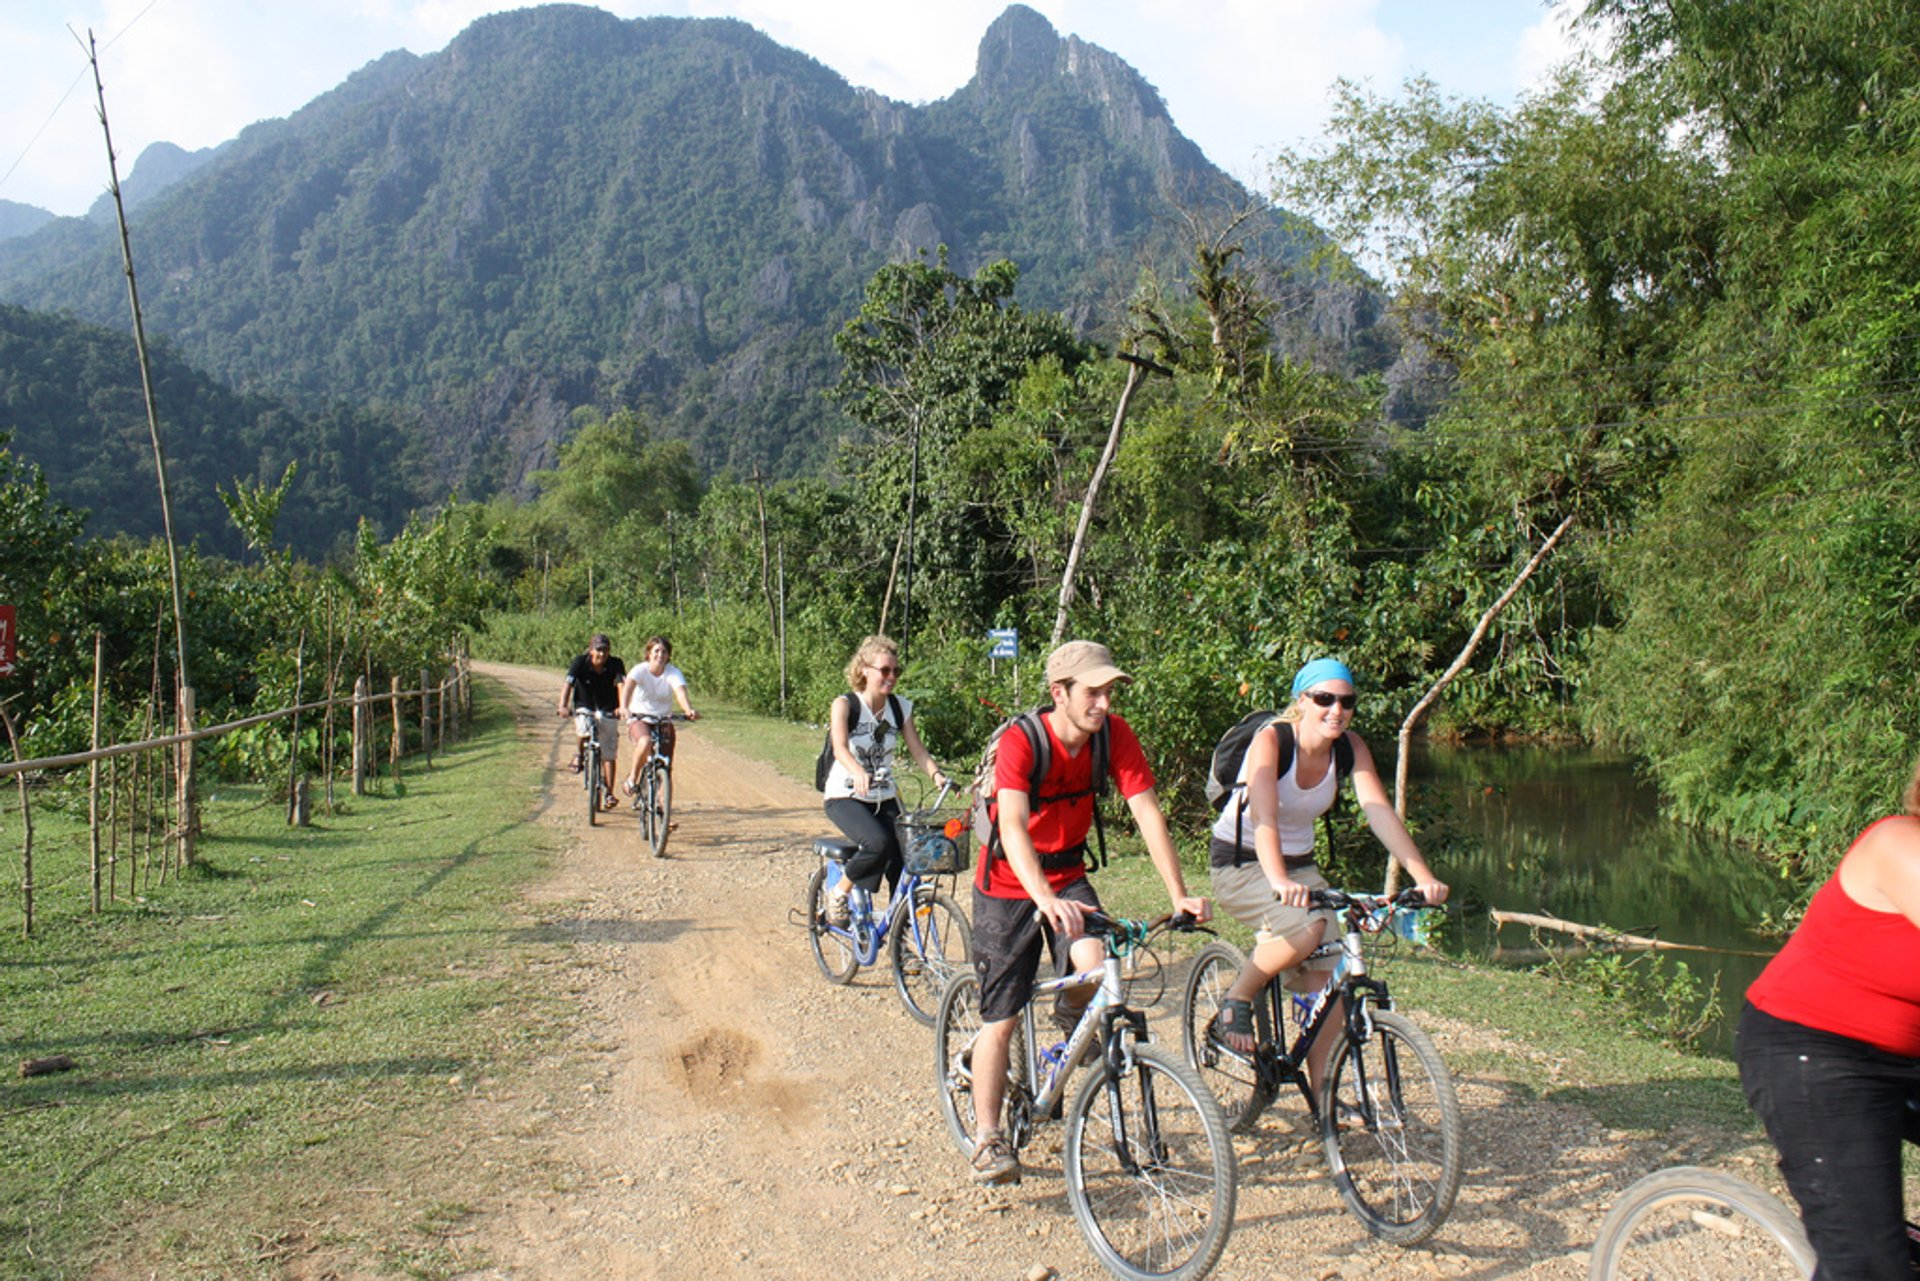 The Tour de Laos sets off on its afternoon stage back to Vang Vieng